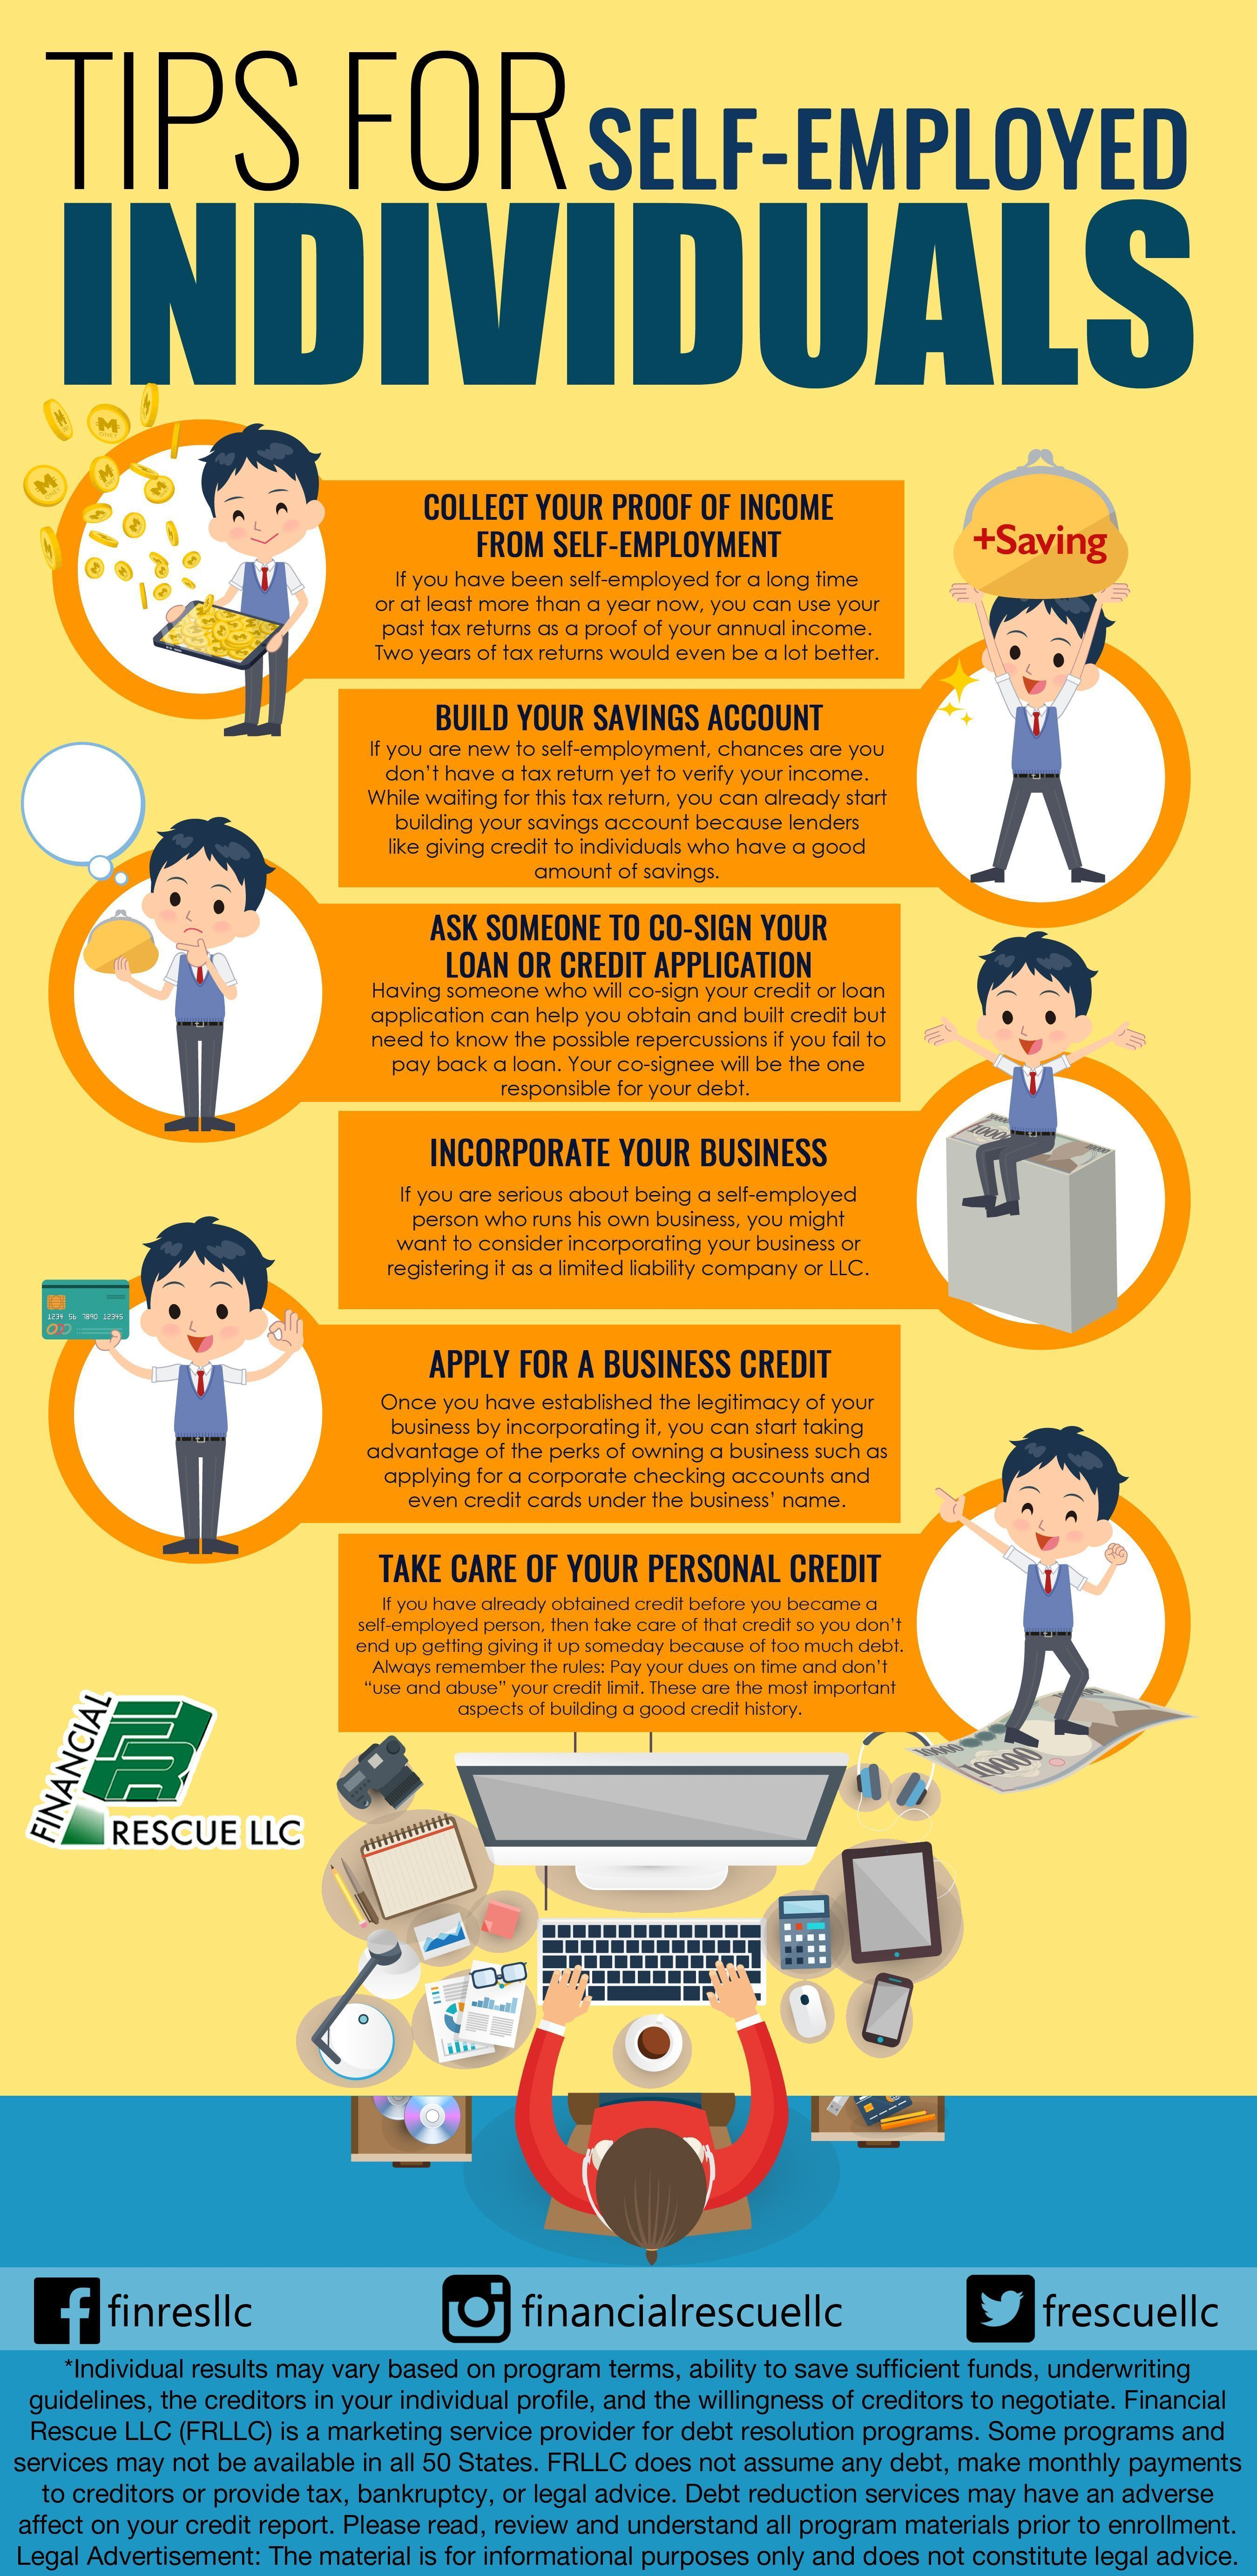 building and getting credit: tips for self-employed individuals